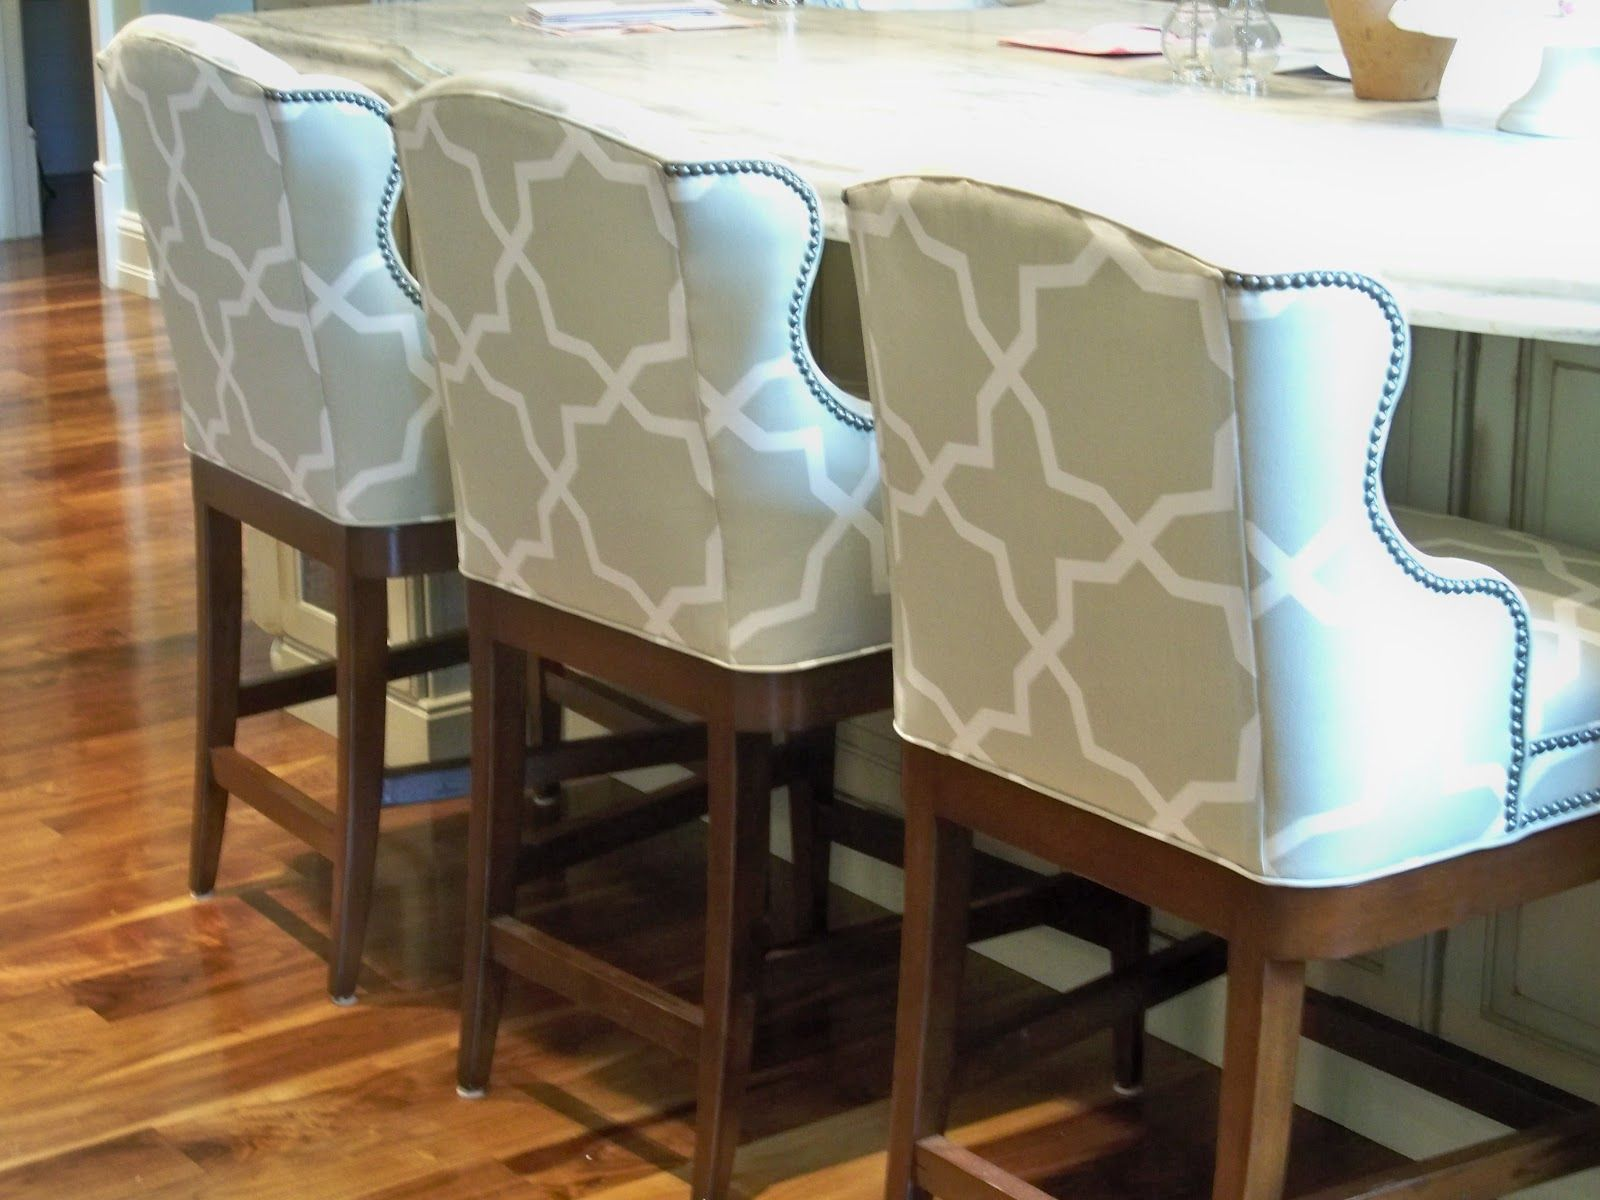 Fabric Counter Height Bar Stools Victoria Dreste Designs A New Home Part Two Vanguard Counter